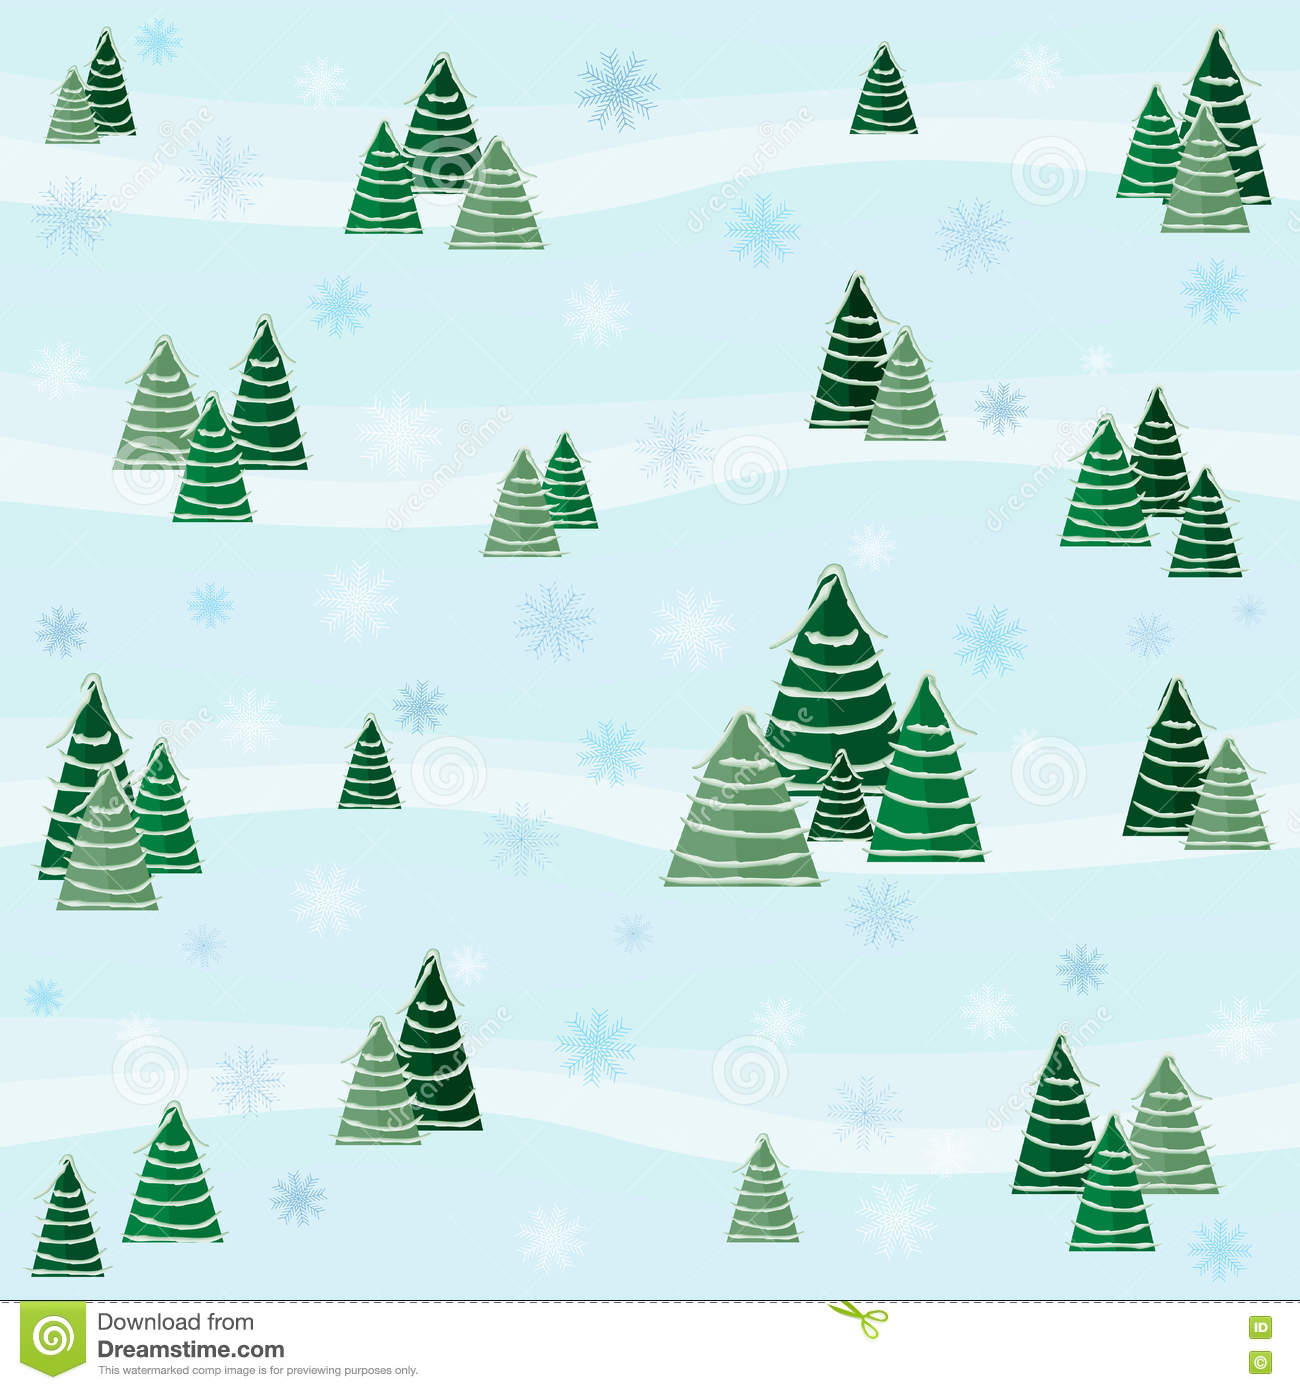 Festive winter pattern with snow-covered trees and snowflakes Design for greeting cards, Christmas / New Year background